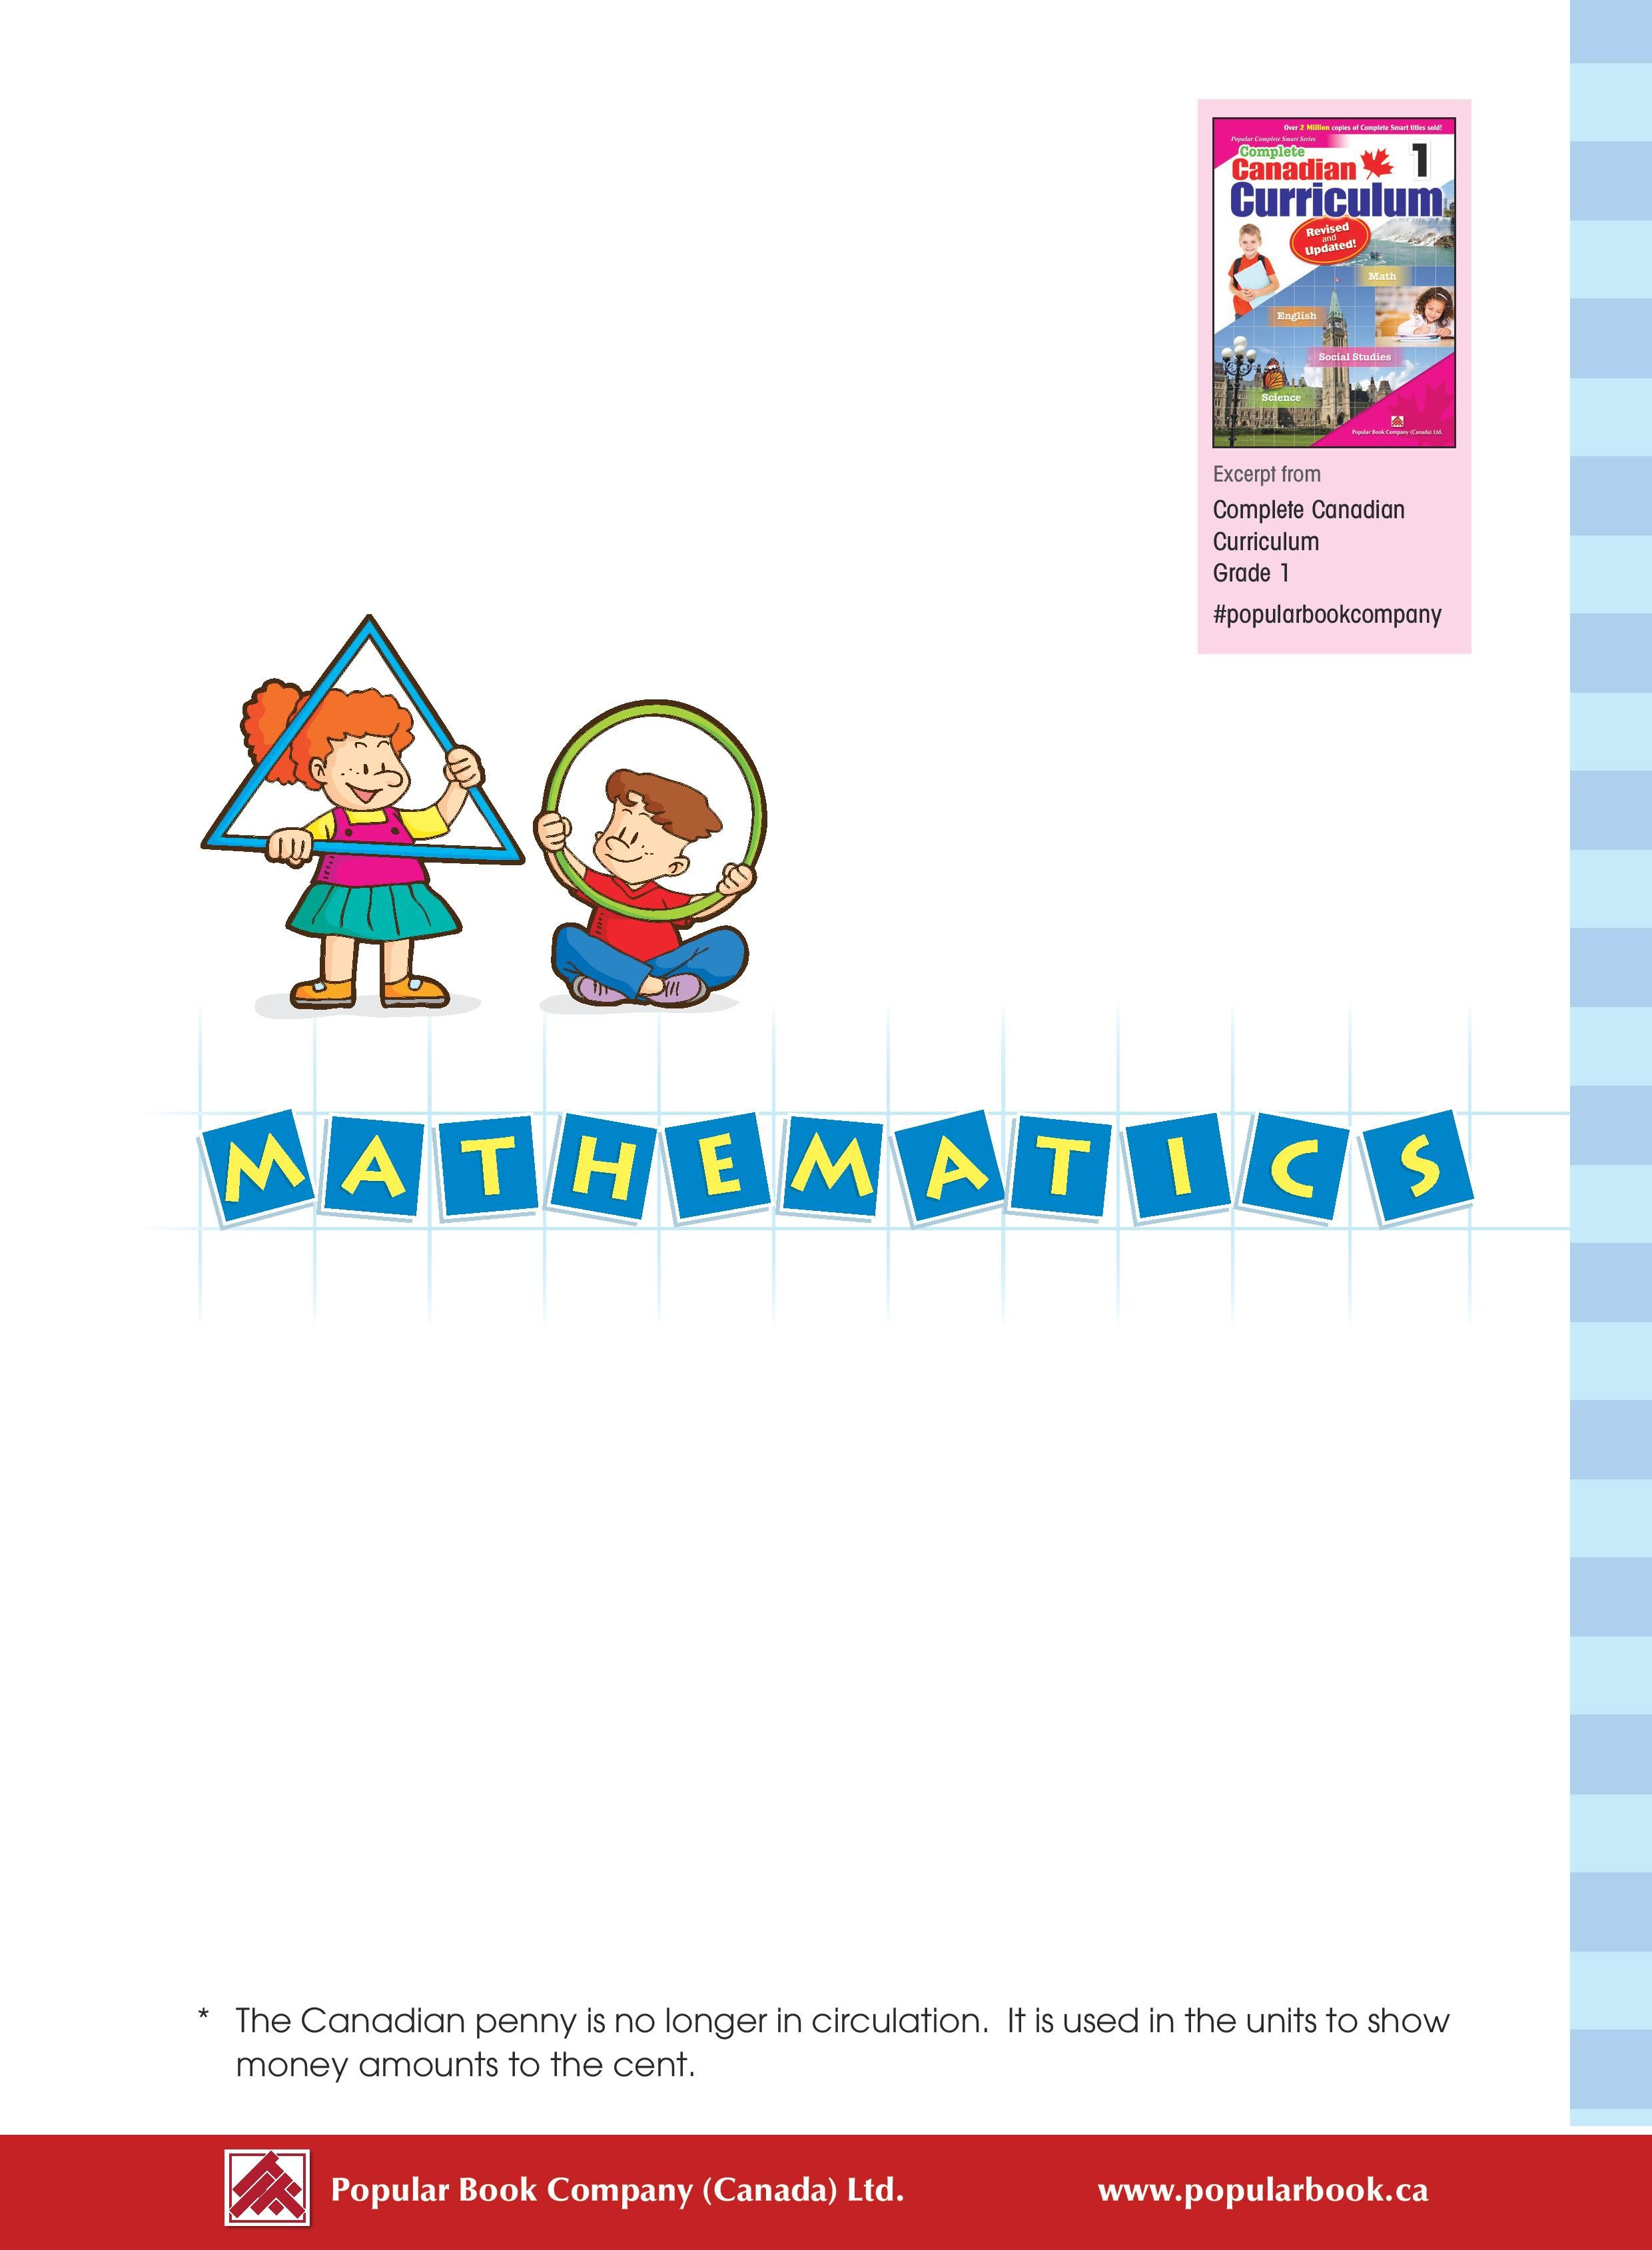 Check Out Our Facebook Page Post For The Mathematics Sample Pages From The Complete Canadian Curriculum Free Worksheets For Kids Popular Books Curriculum [ 3378 x 2480 Pixel ]